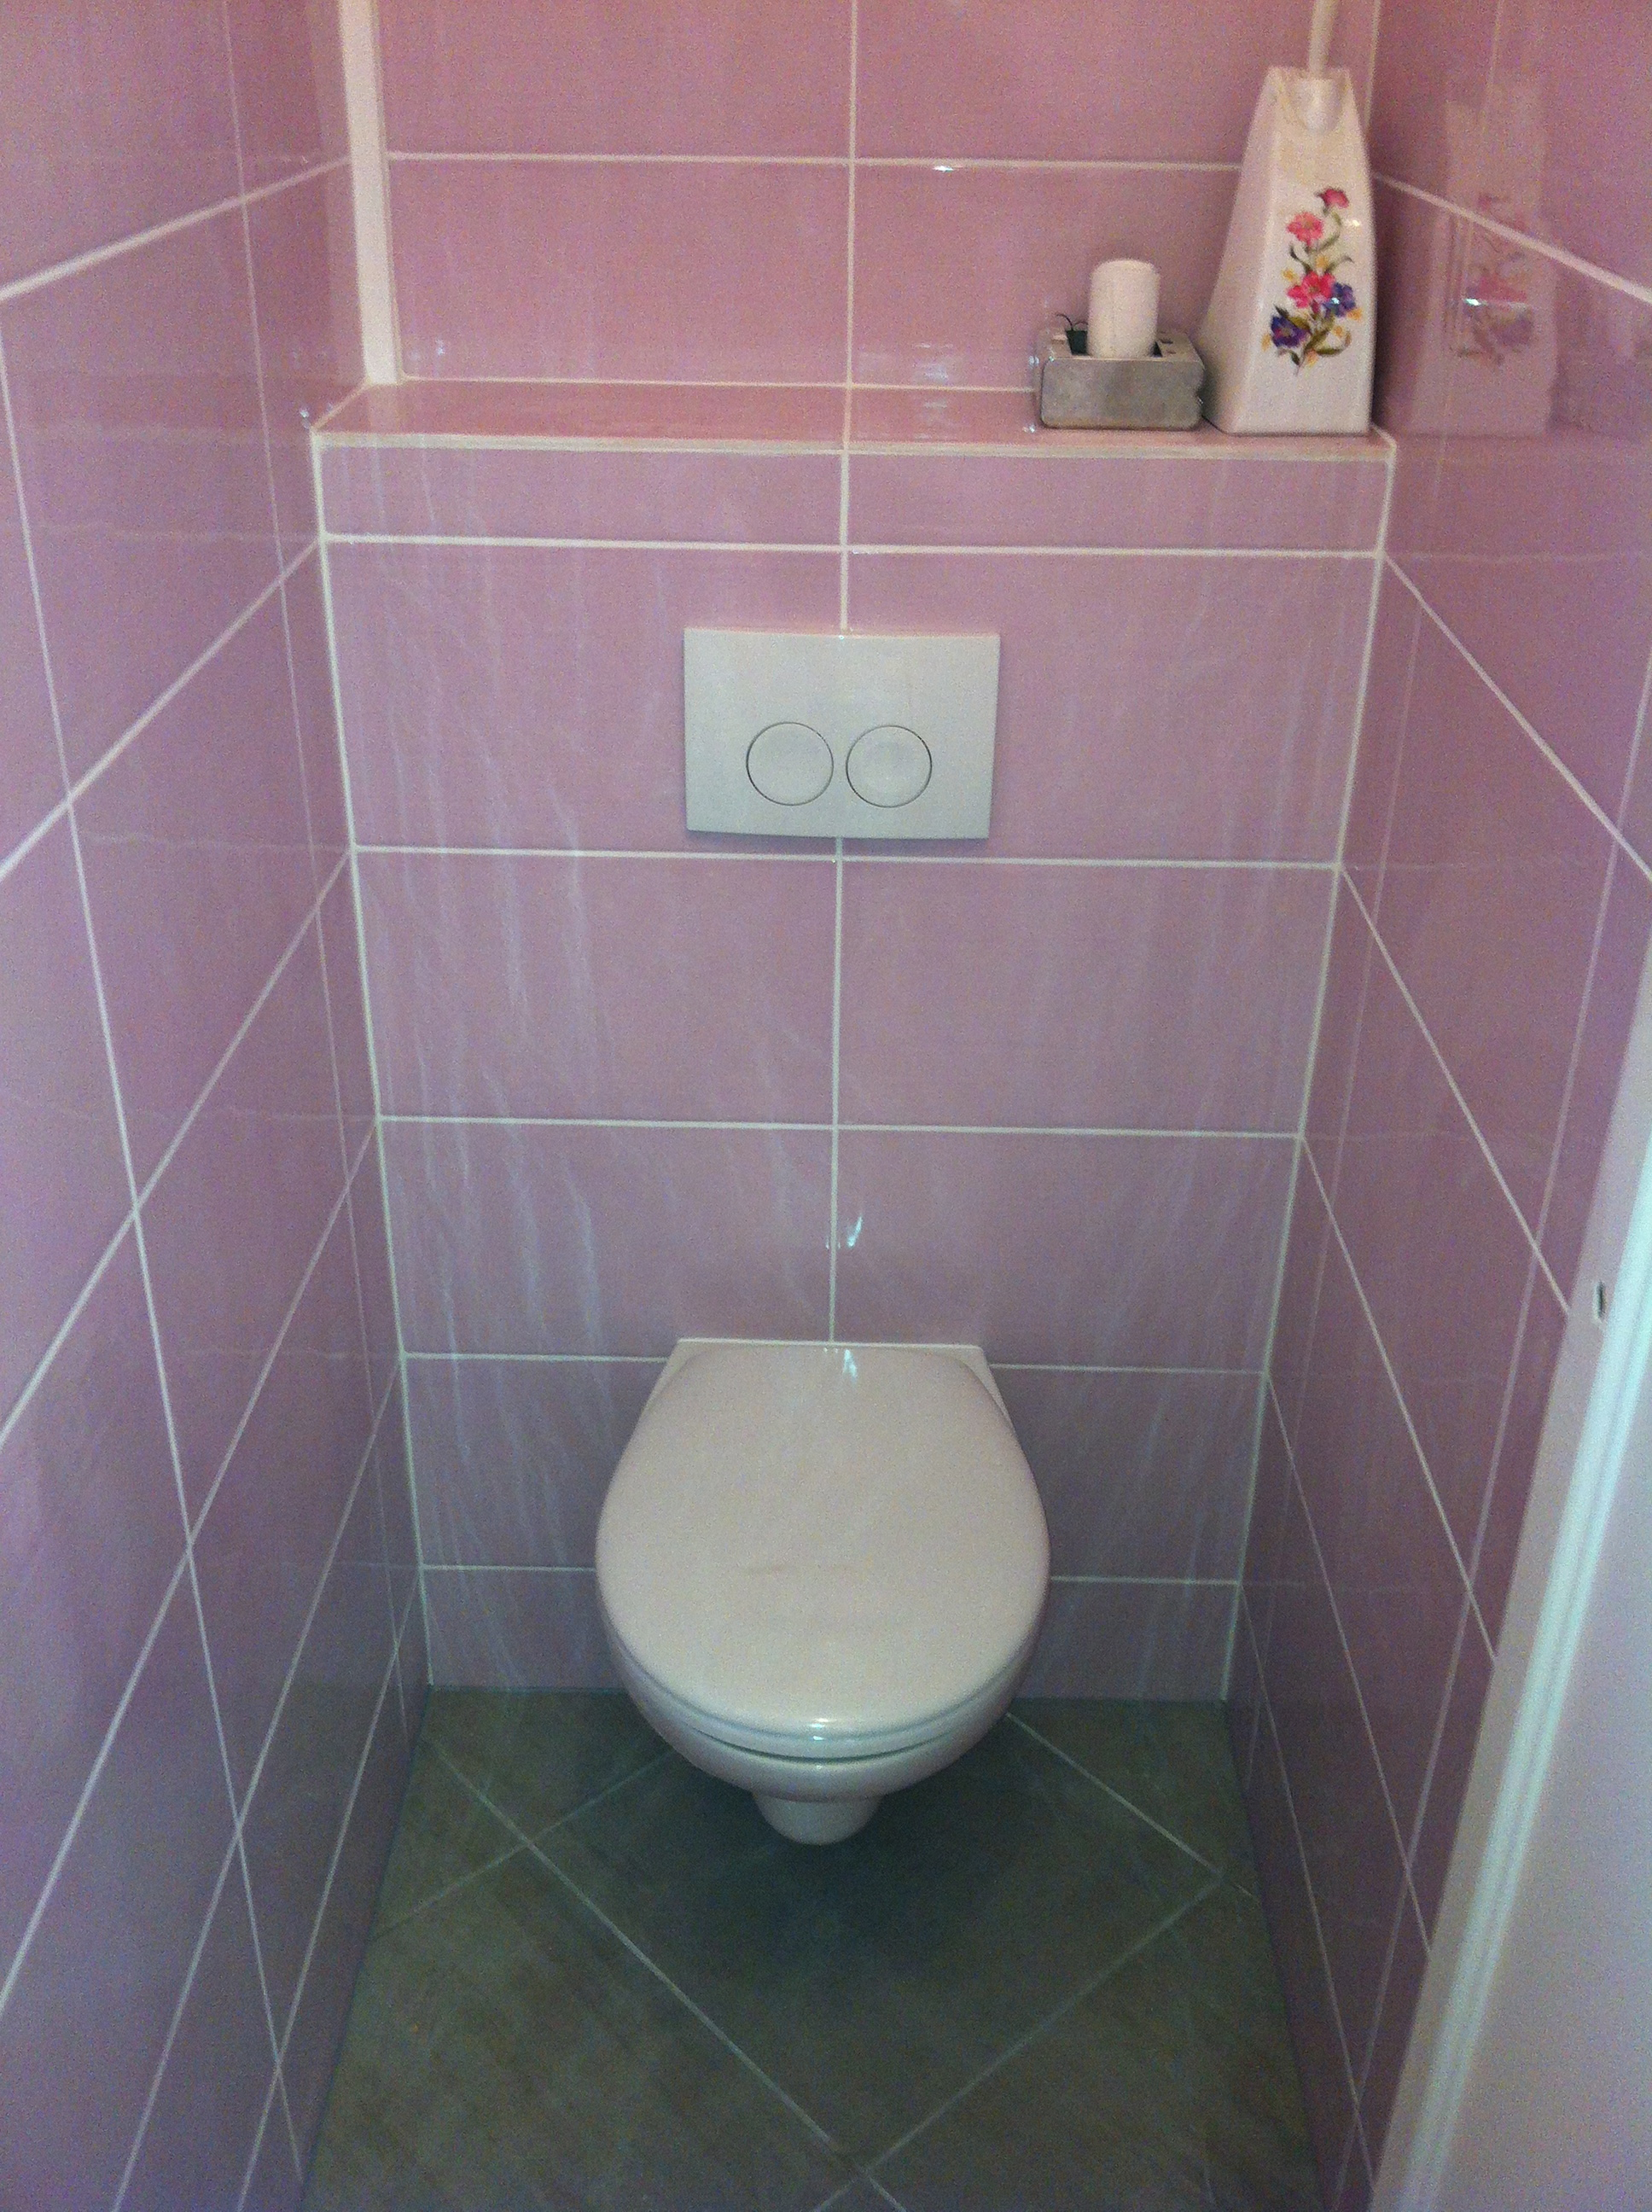 Wc suspendu wc encastr dream house for Faience pour wc